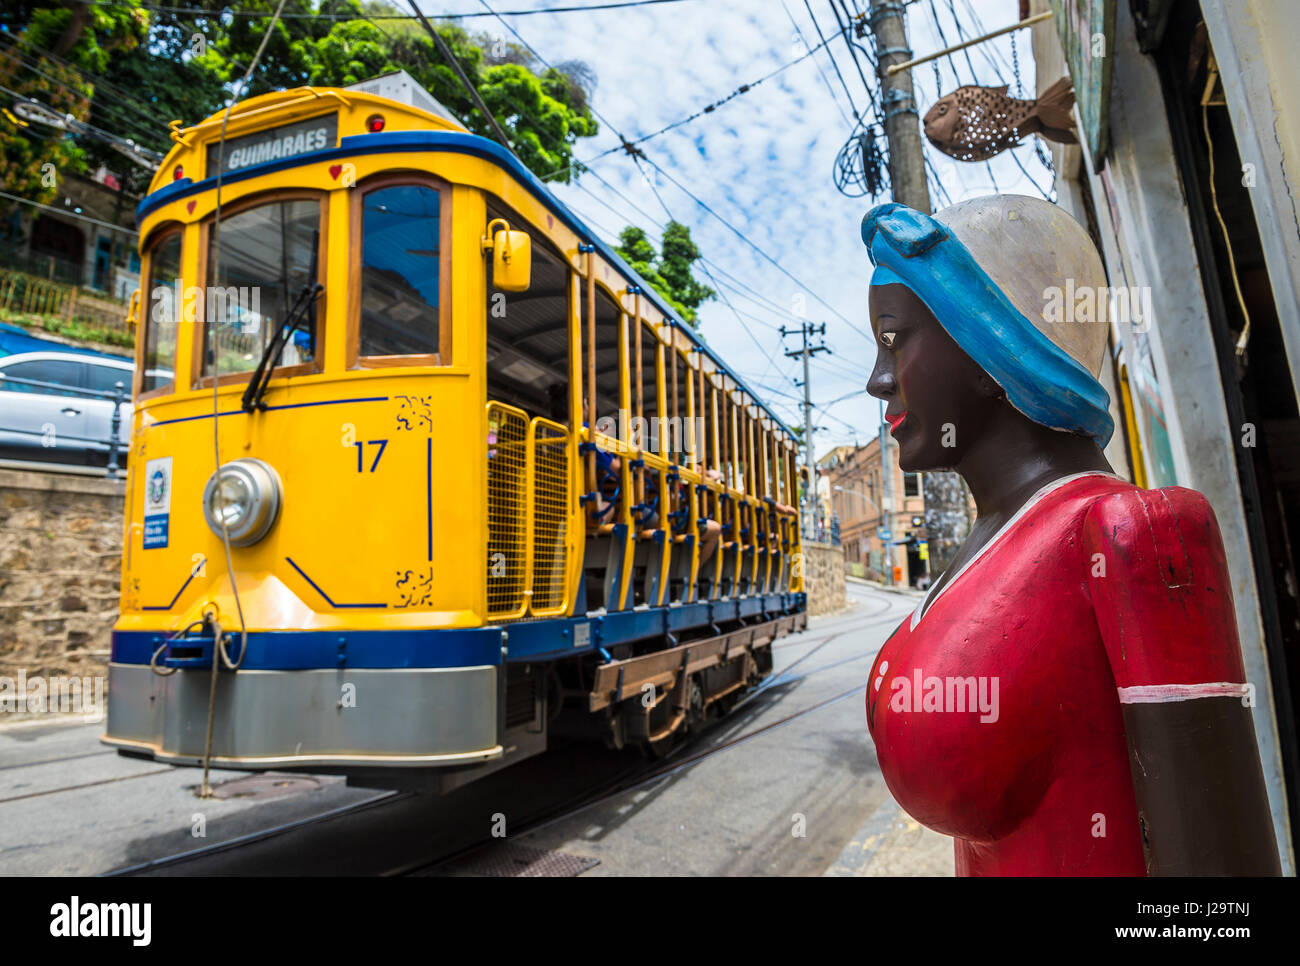 RIO DE JANEIRO - JANUARY 31, 2017: A brightly painted statue of a Brazilian woman stands on the street as a traditional - Stock Image